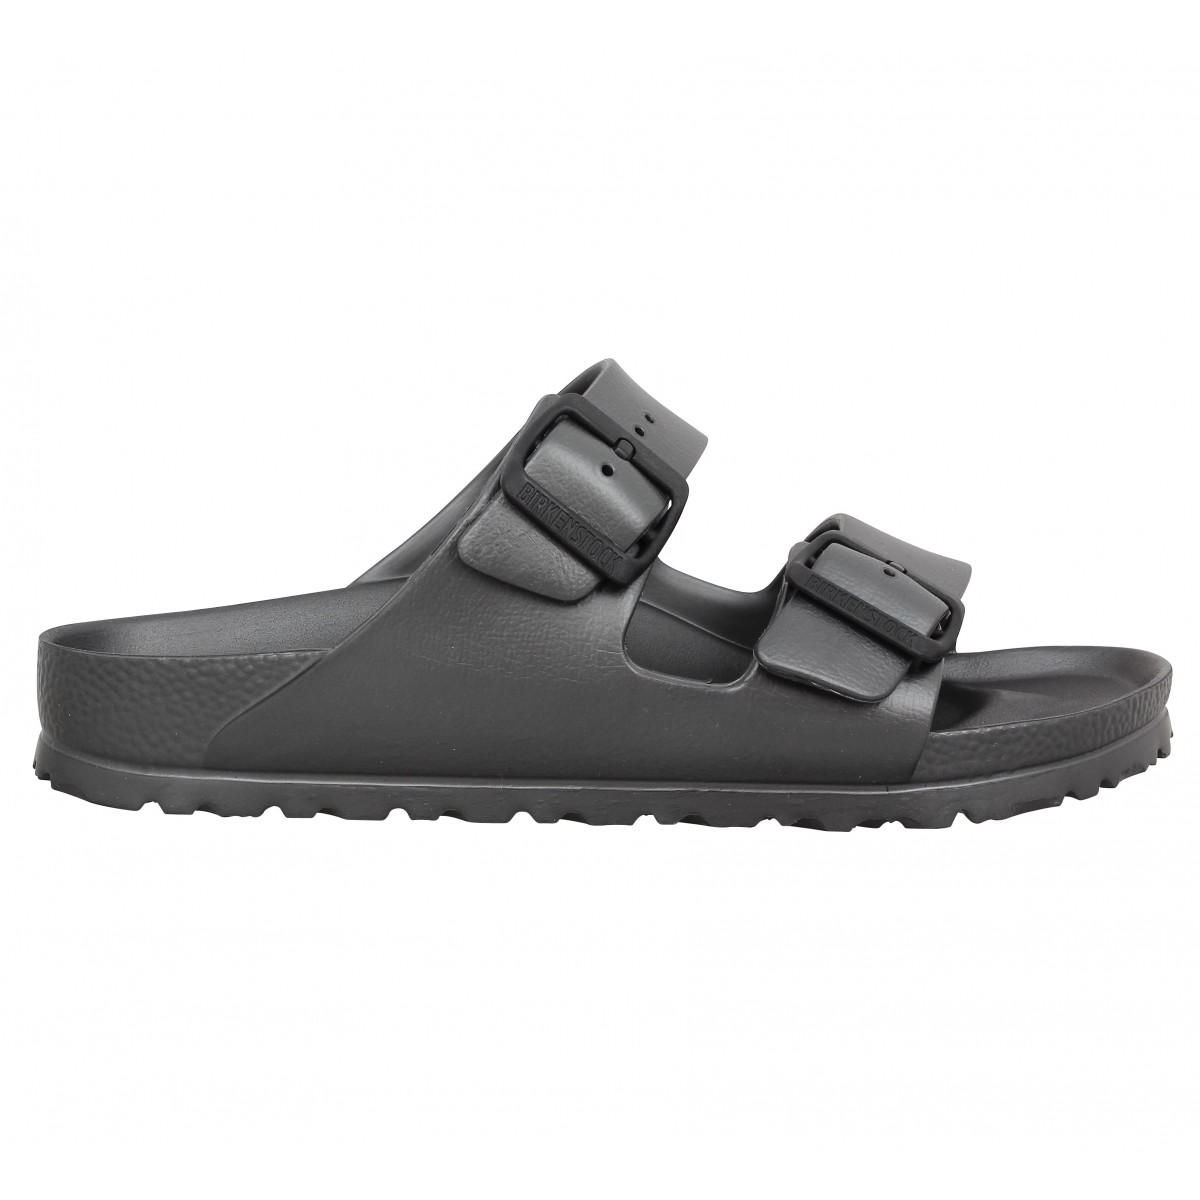 soldes birkenstock arizona eva femme anthracite femme fanny chaussures. Black Bedroom Furniture Sets. Home Design Ideas